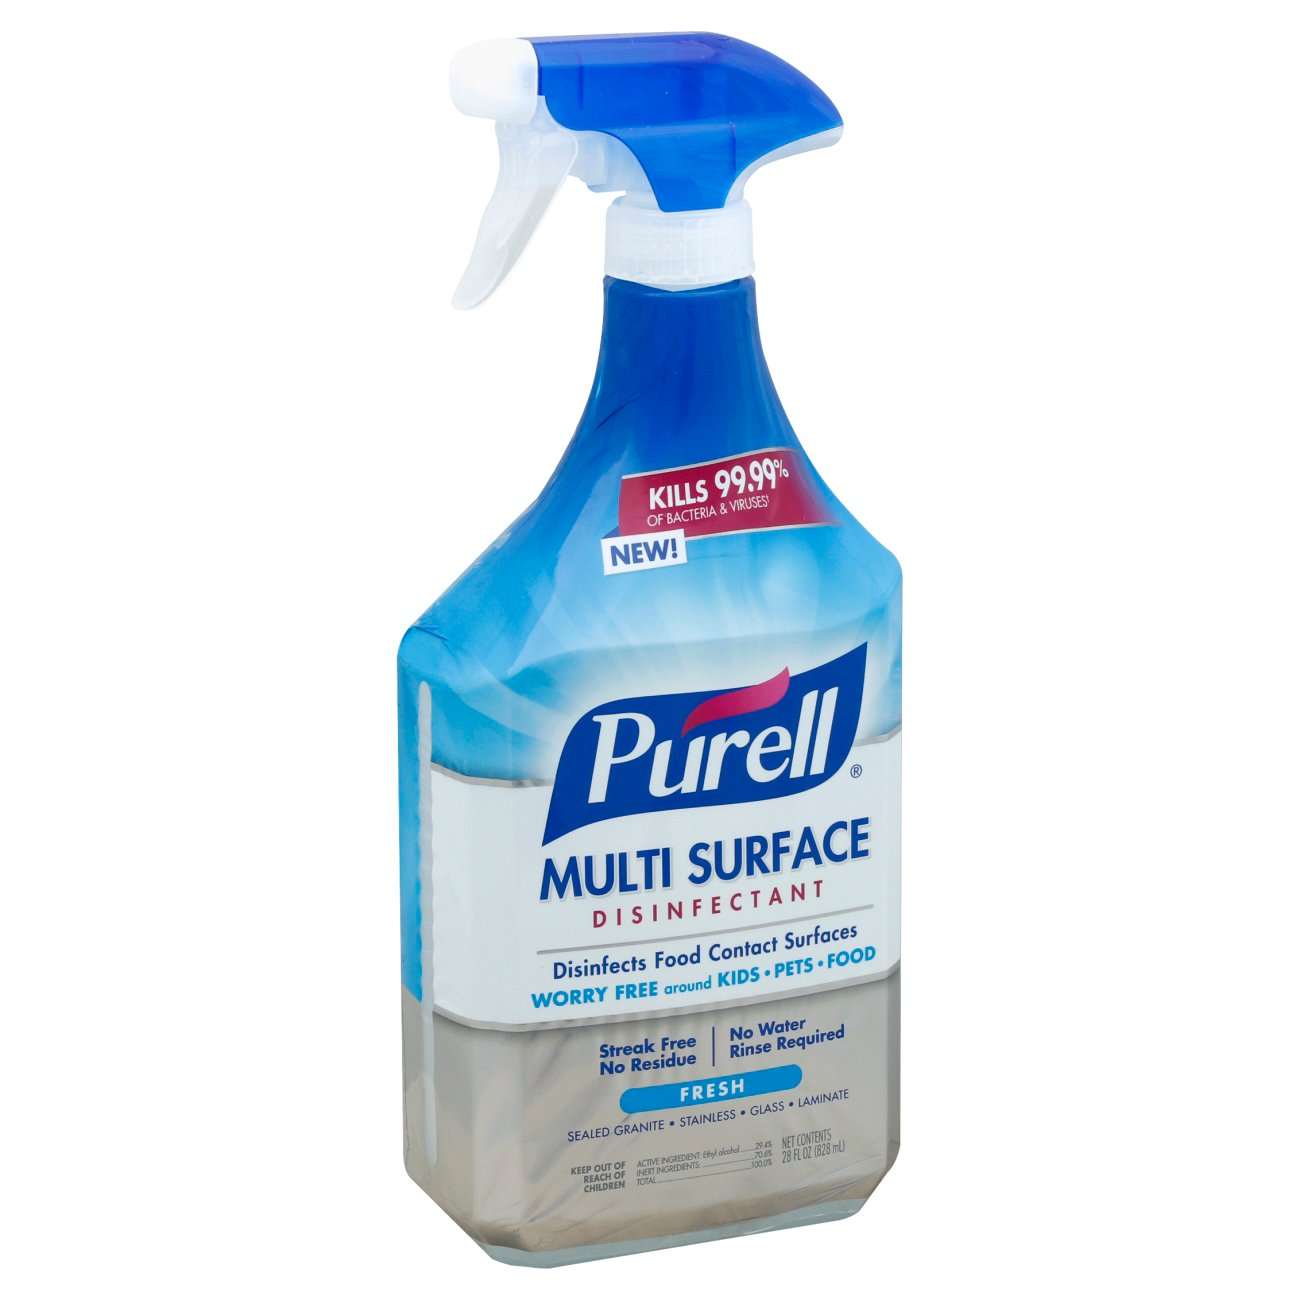 purell multi surface disinfectant spray